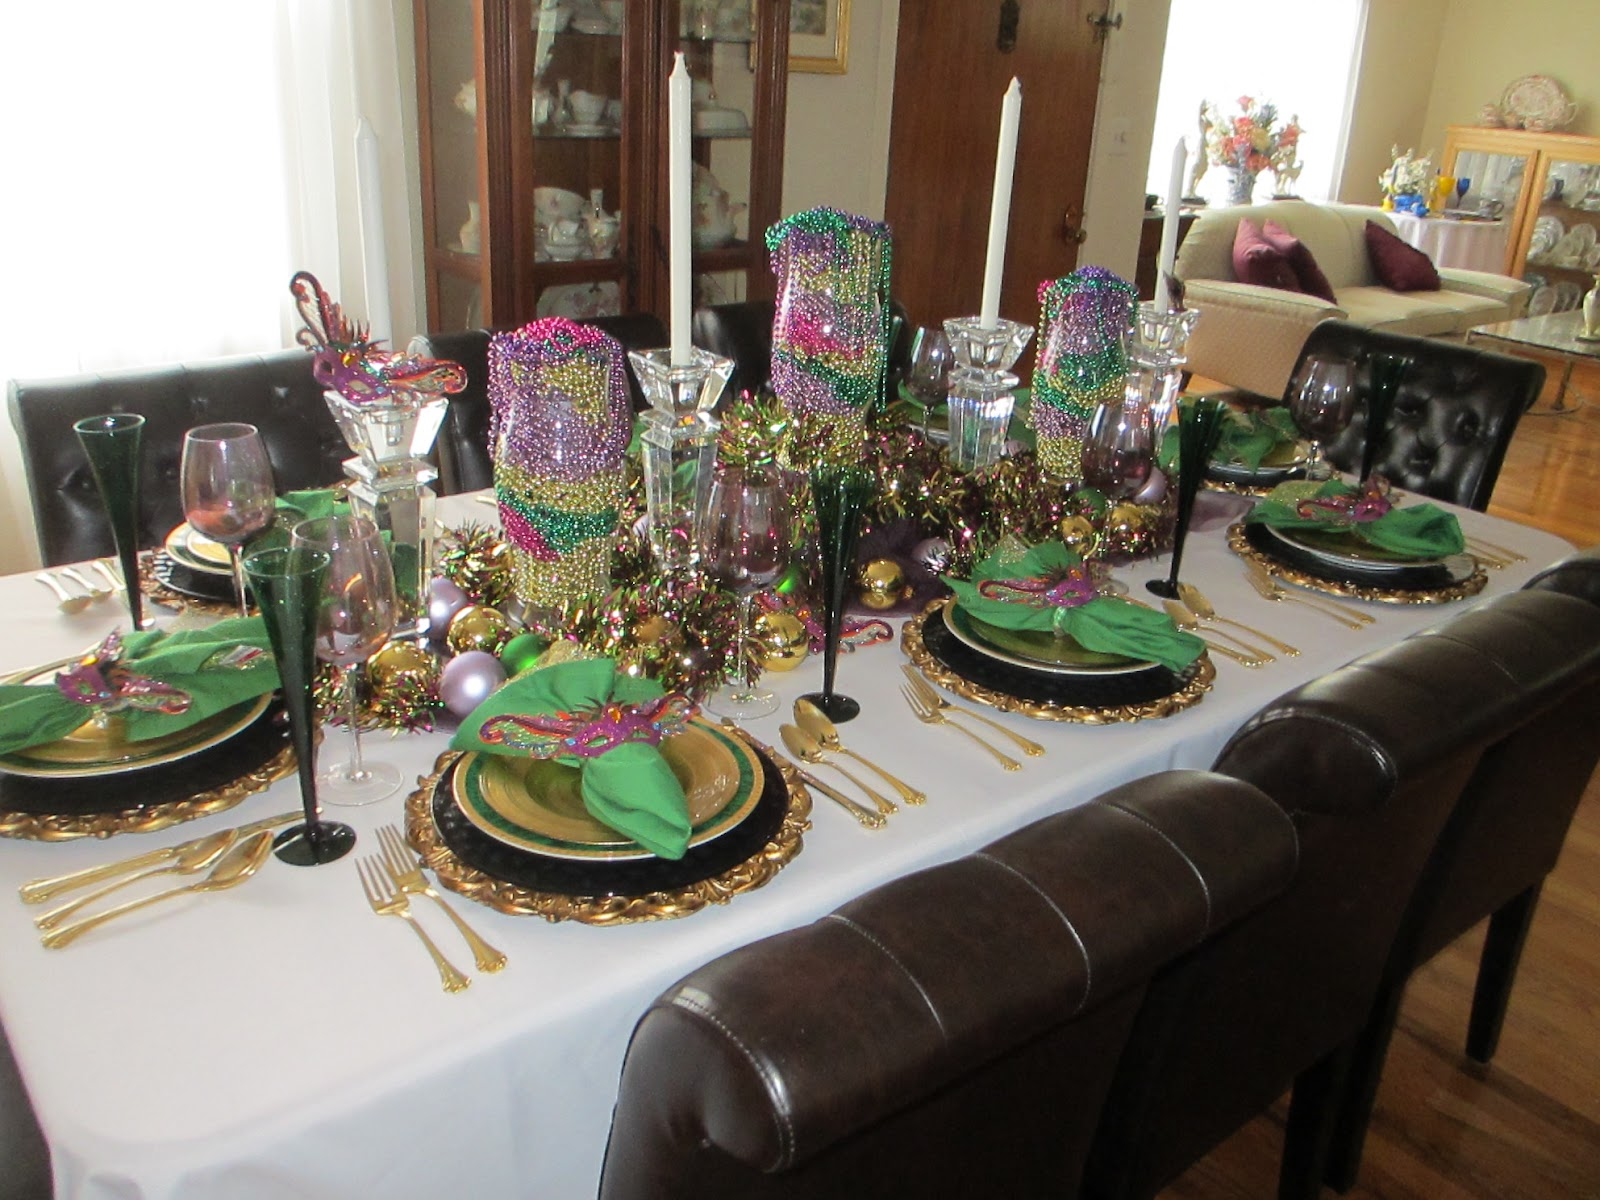 Mardi Gras Celebration Table & The Welcomed Guest: Mardi Gras Celebration Table